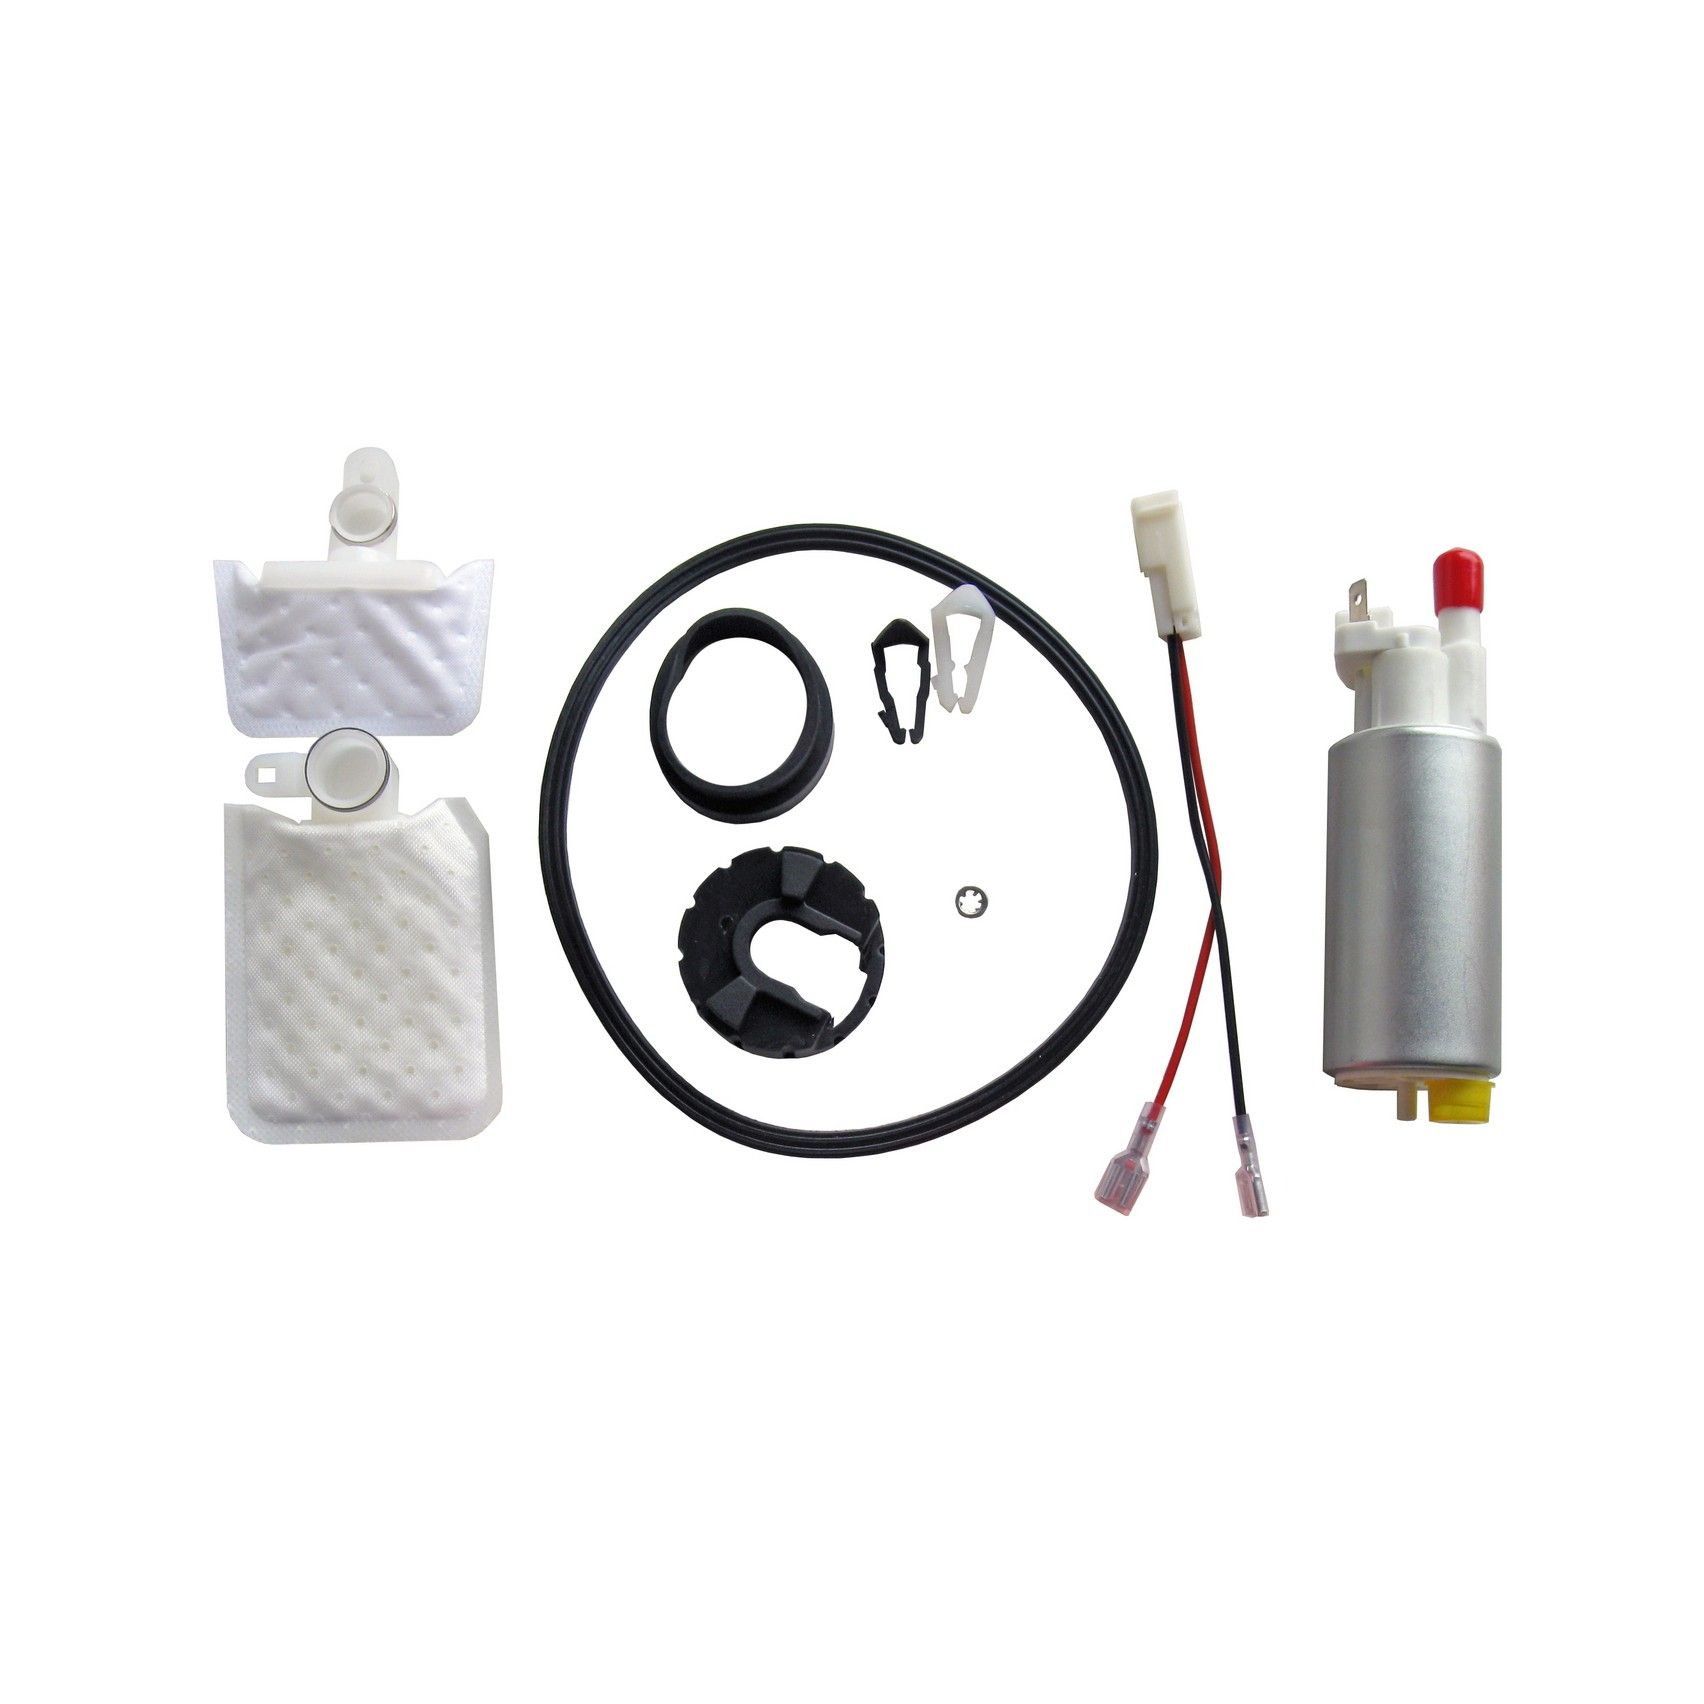 Ford Focus Fuel Pump And Strainer Set Replacement Airtex